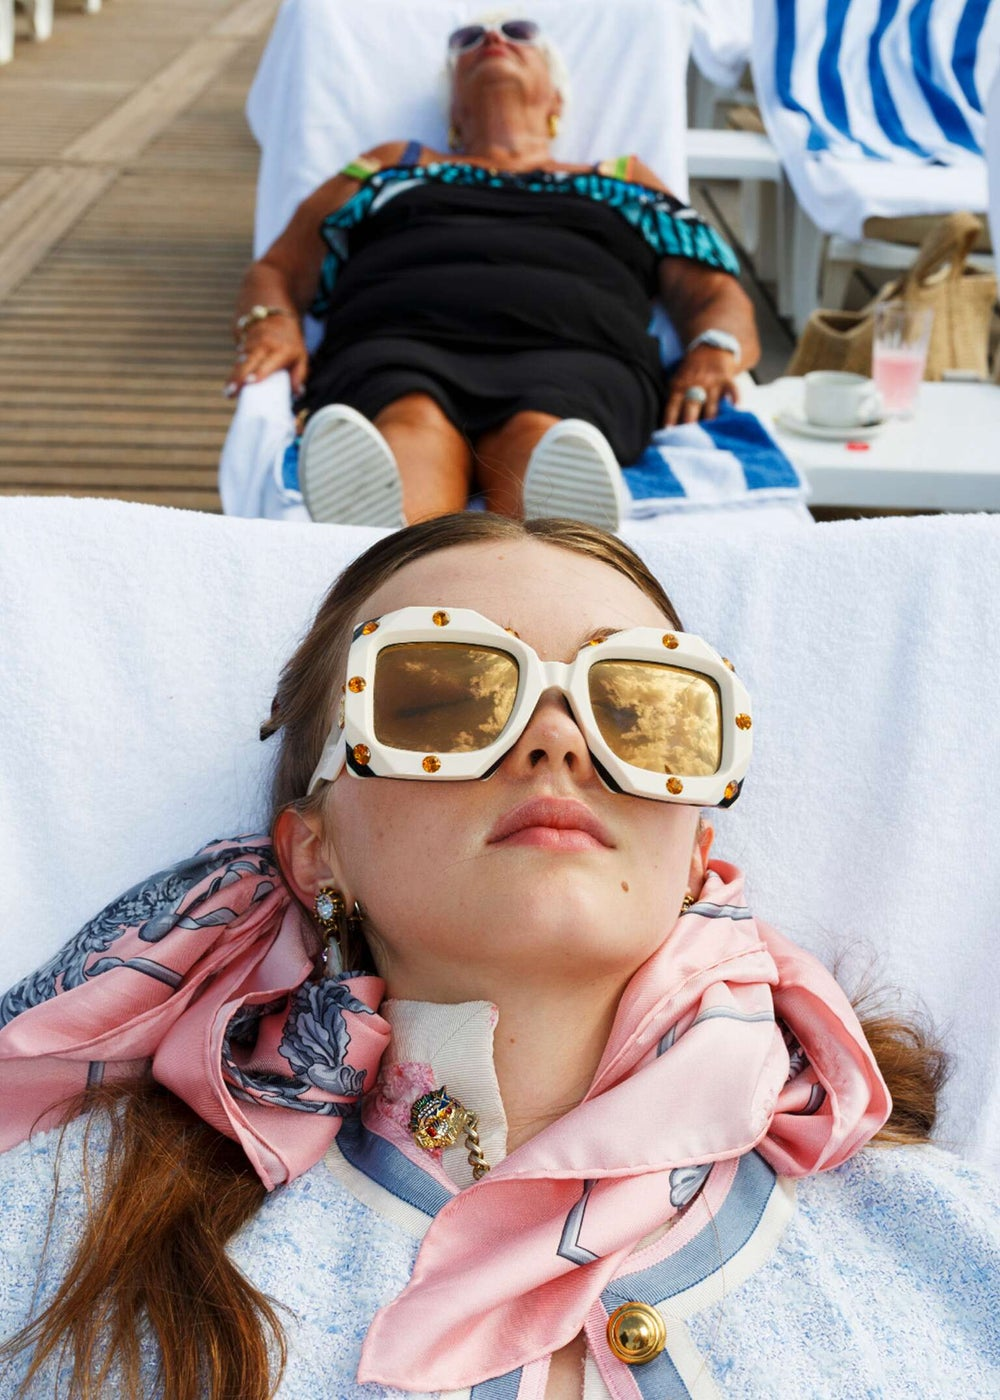 Martin Parr - Gucci World (The Price Of Love)